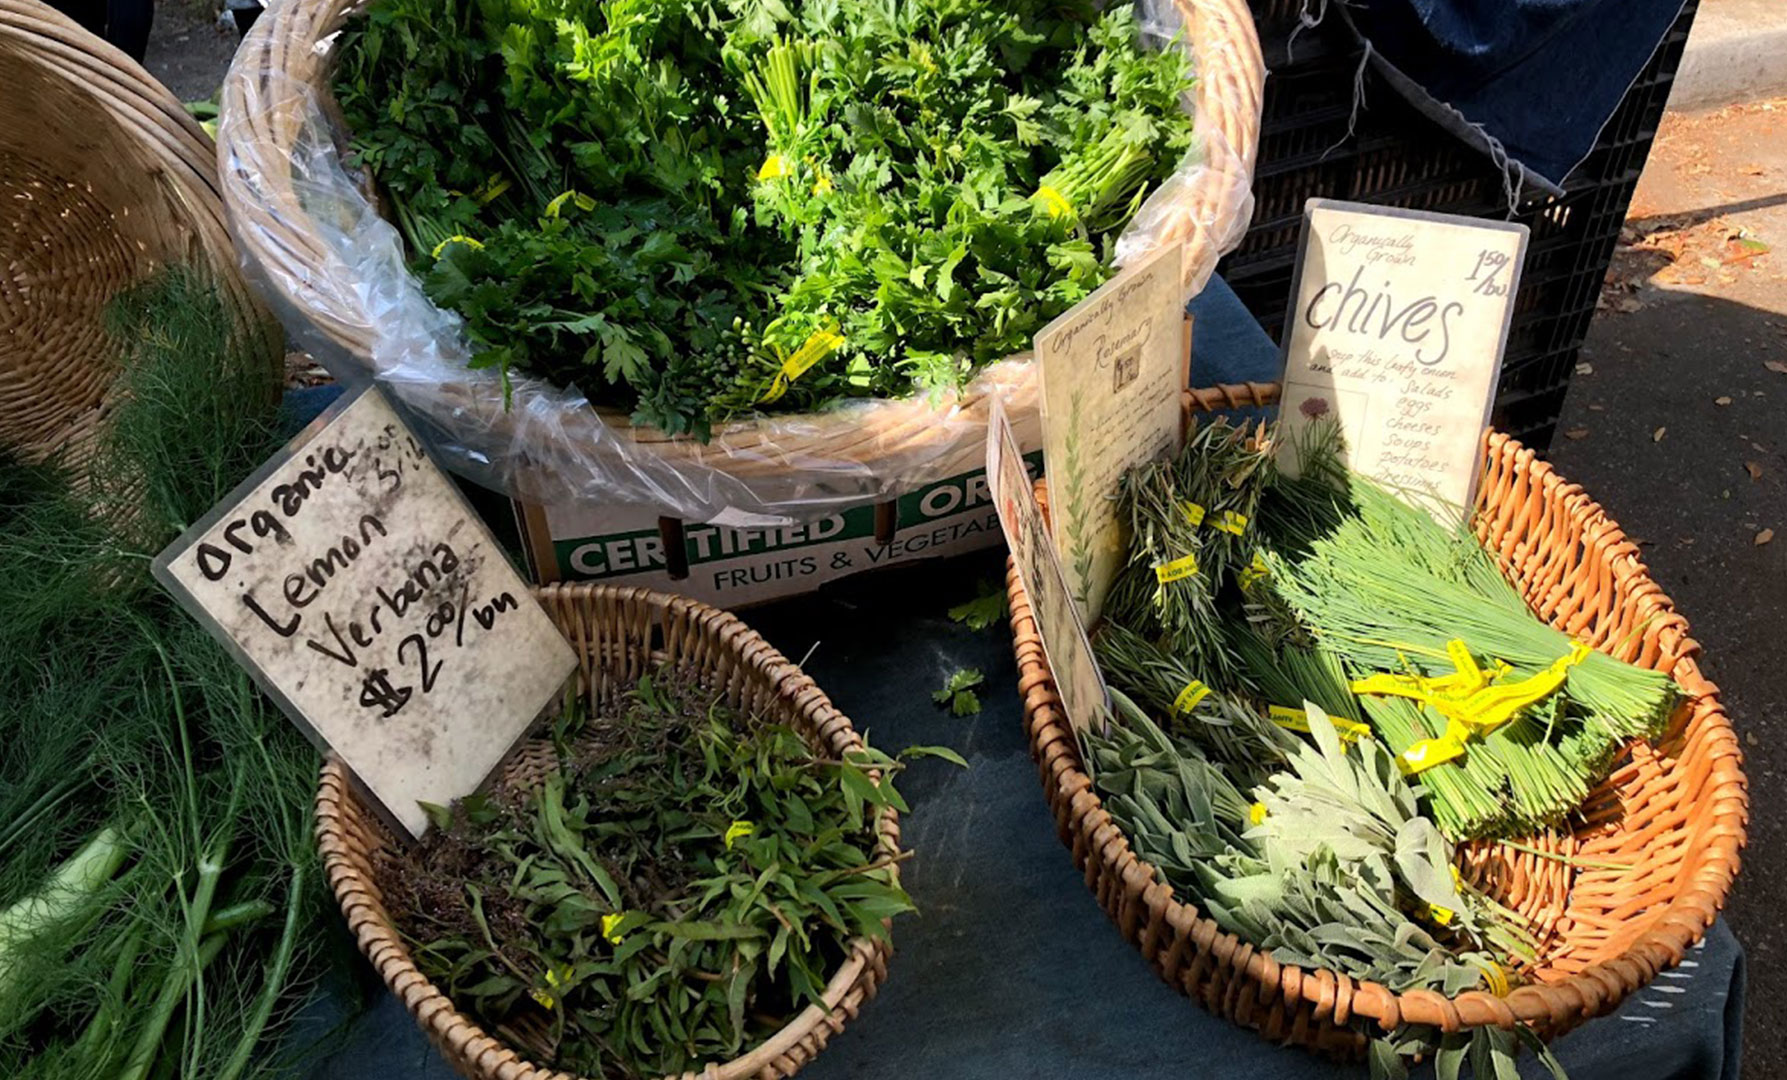 Hidden Gems at the Mountain View Farmers' Market